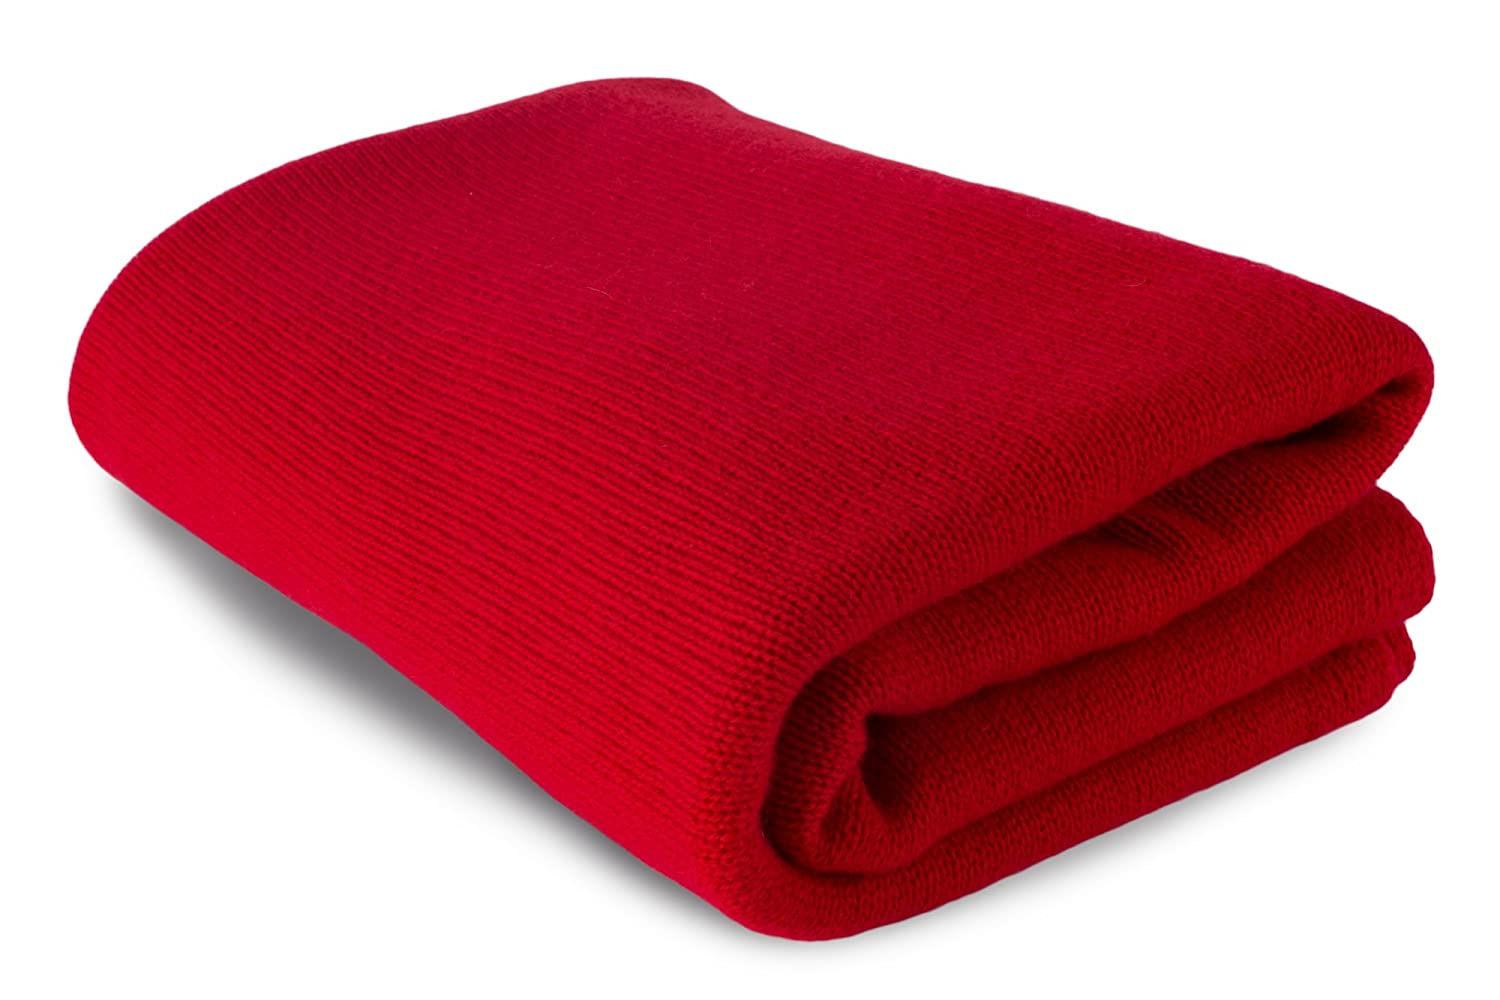 Large 100 %カシミアBed Blanket Throw – レッド – Made to Order、2サイズ可能 – Made in Scotland Extra Large (160cm by 208cm) レッド LC093_red B01NAC4GWQ  Extra Large (160cm by 208cm)